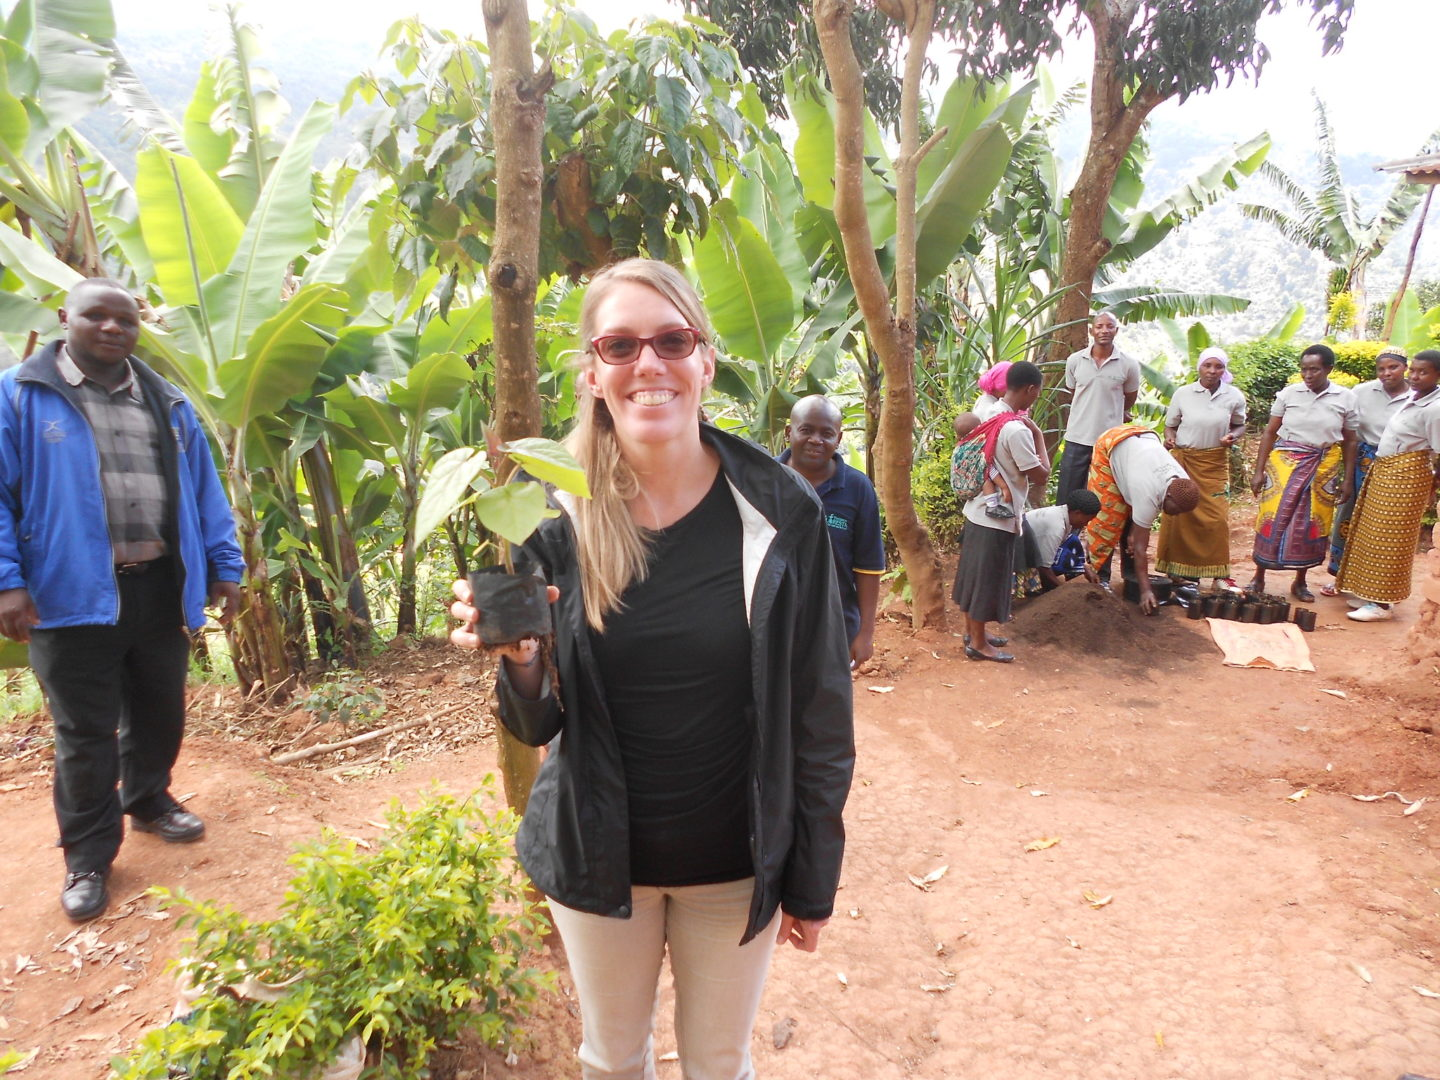 Christi worked closely with our Tanzania program for many years.